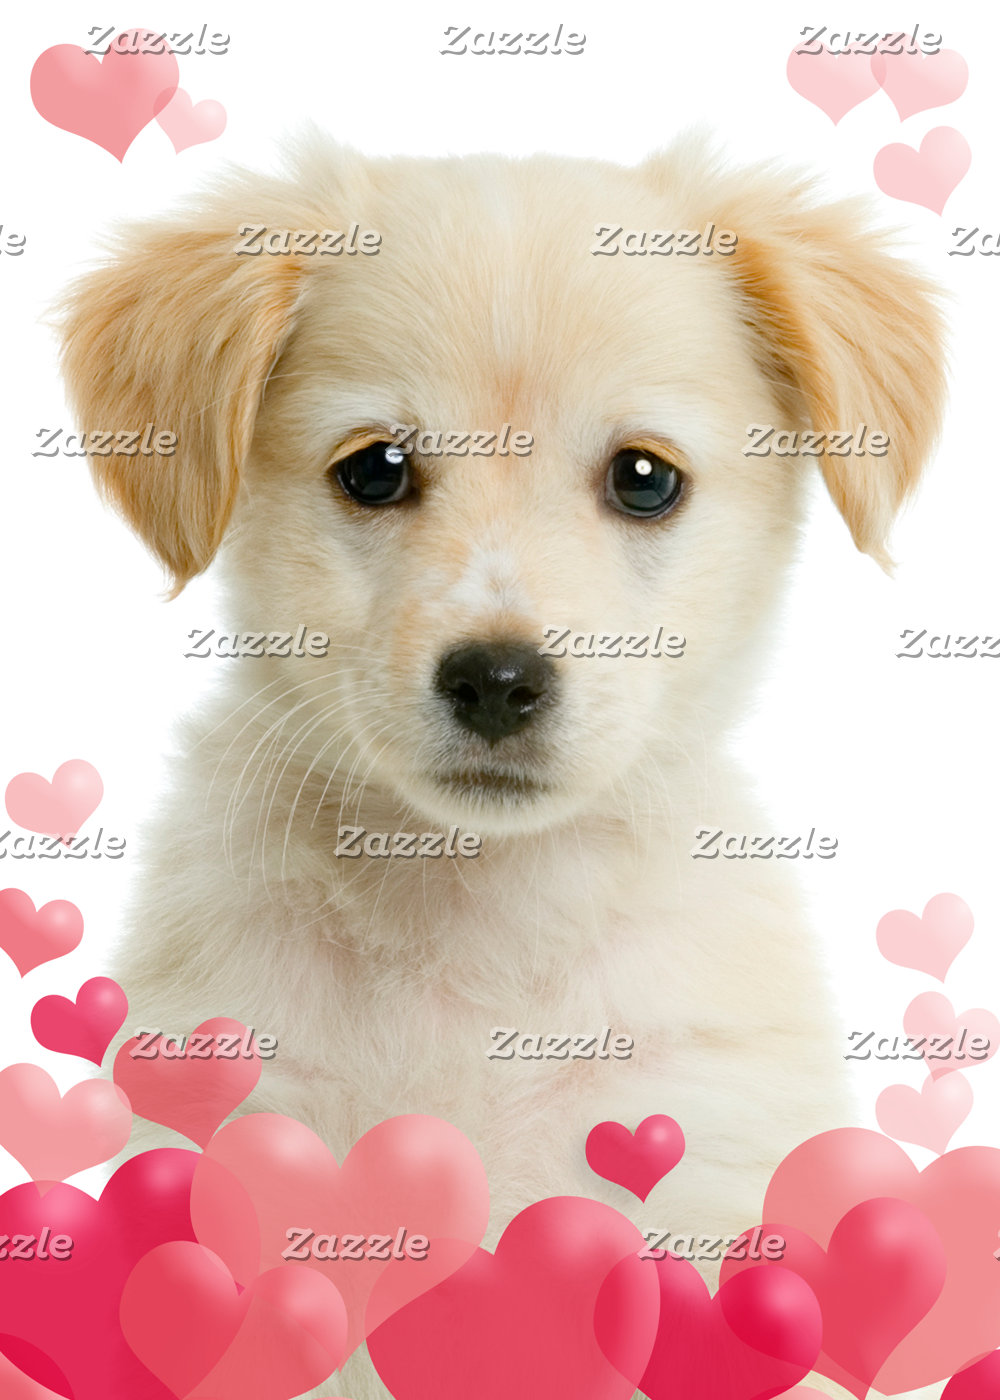 Puppy Love Cards and Gifts